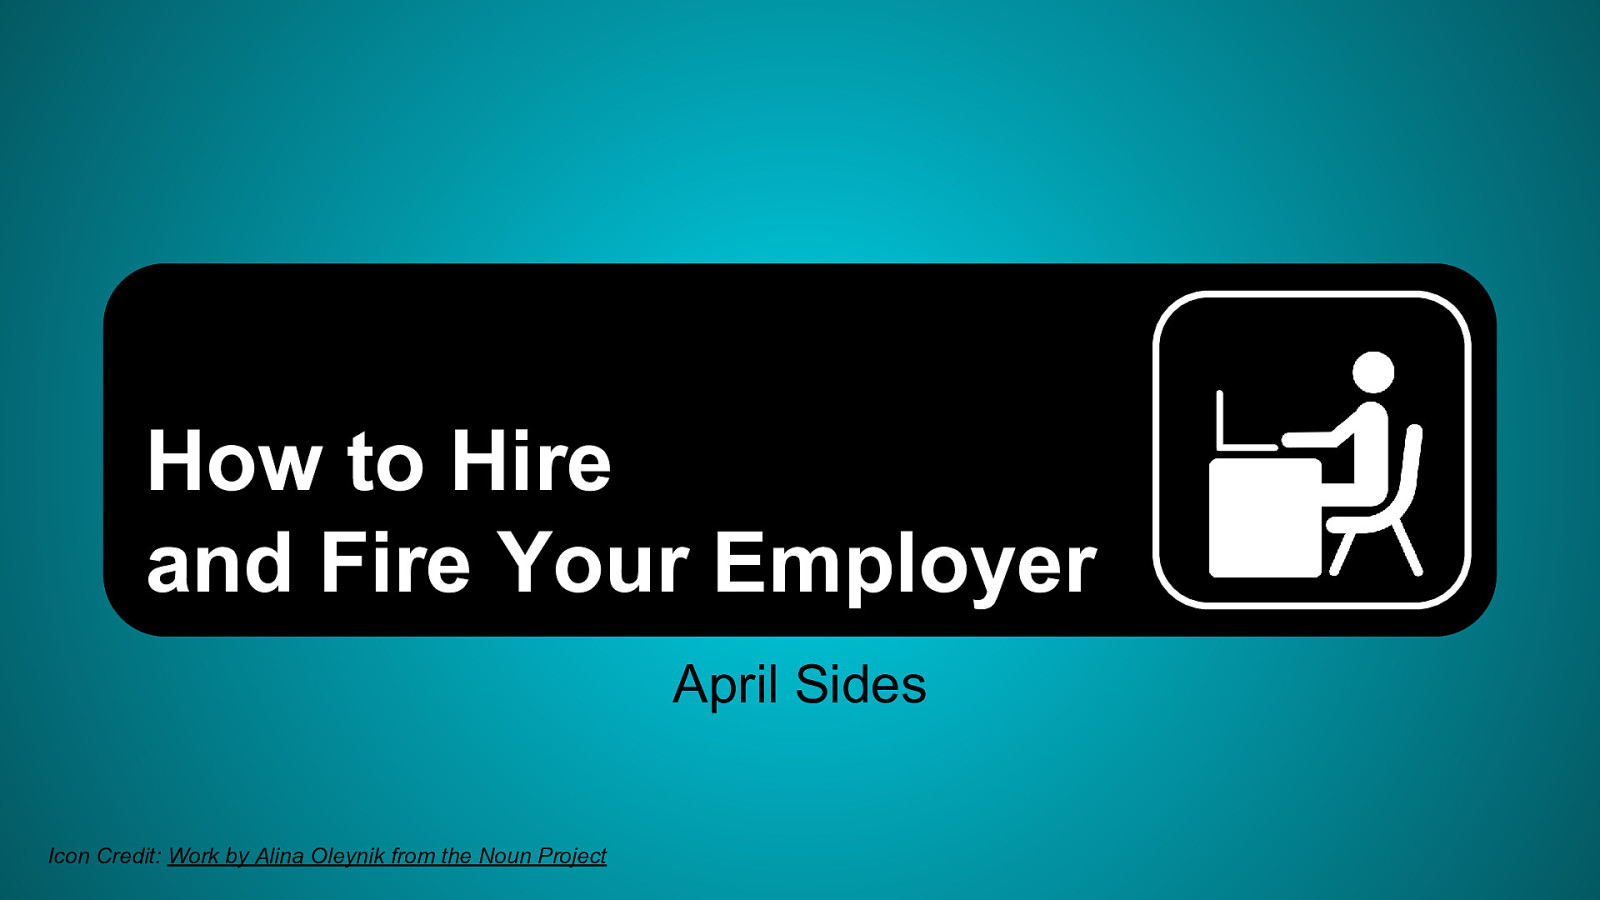 How to Hire and Fire Your Employer